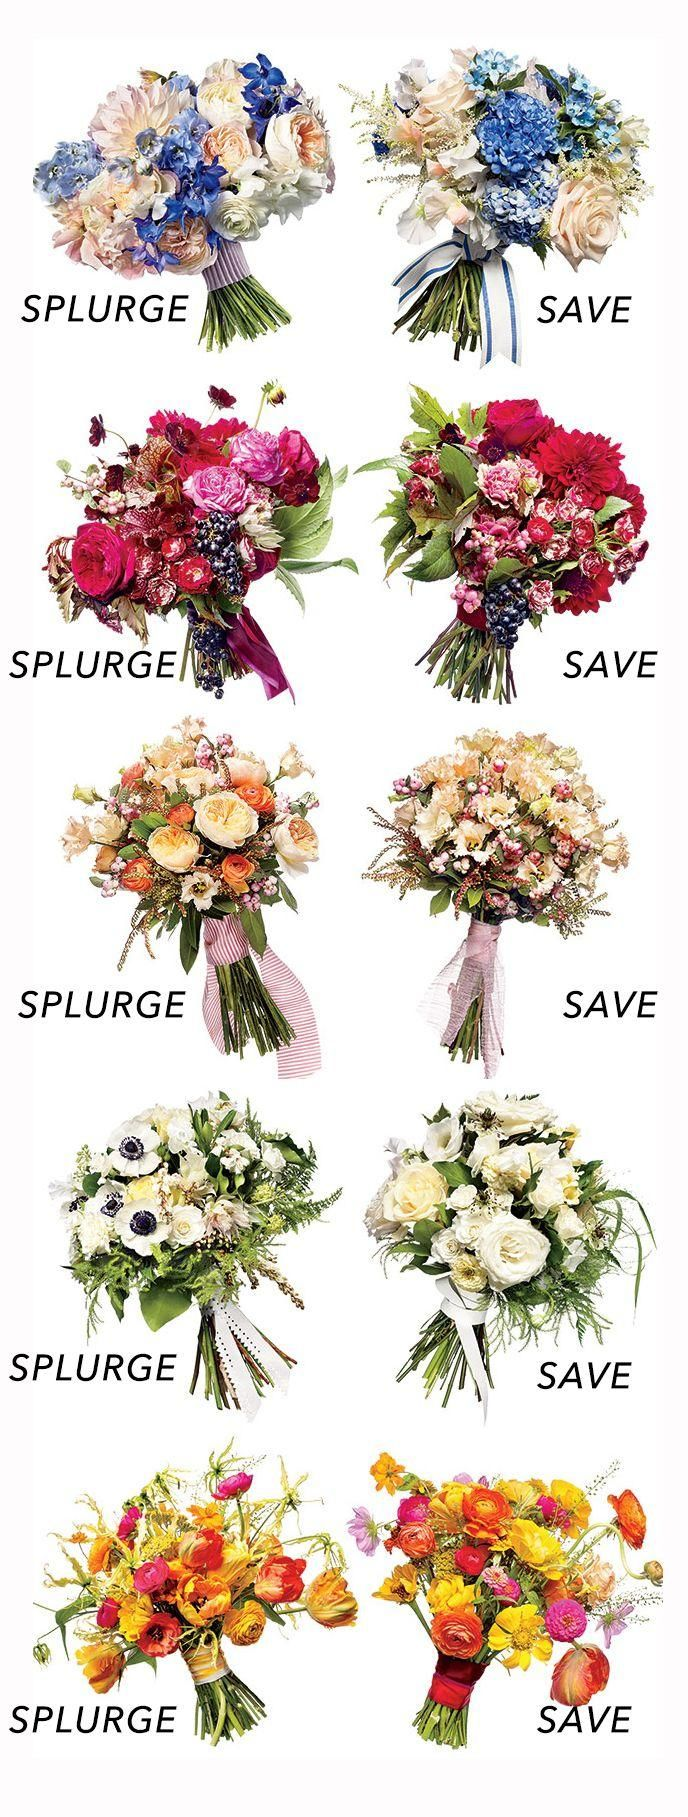 Save vs splurge wedding bouquets budgeting flower and weddings two bouquets two budgets save vs splurge wedding flowers izmirmasajfo Choice Image